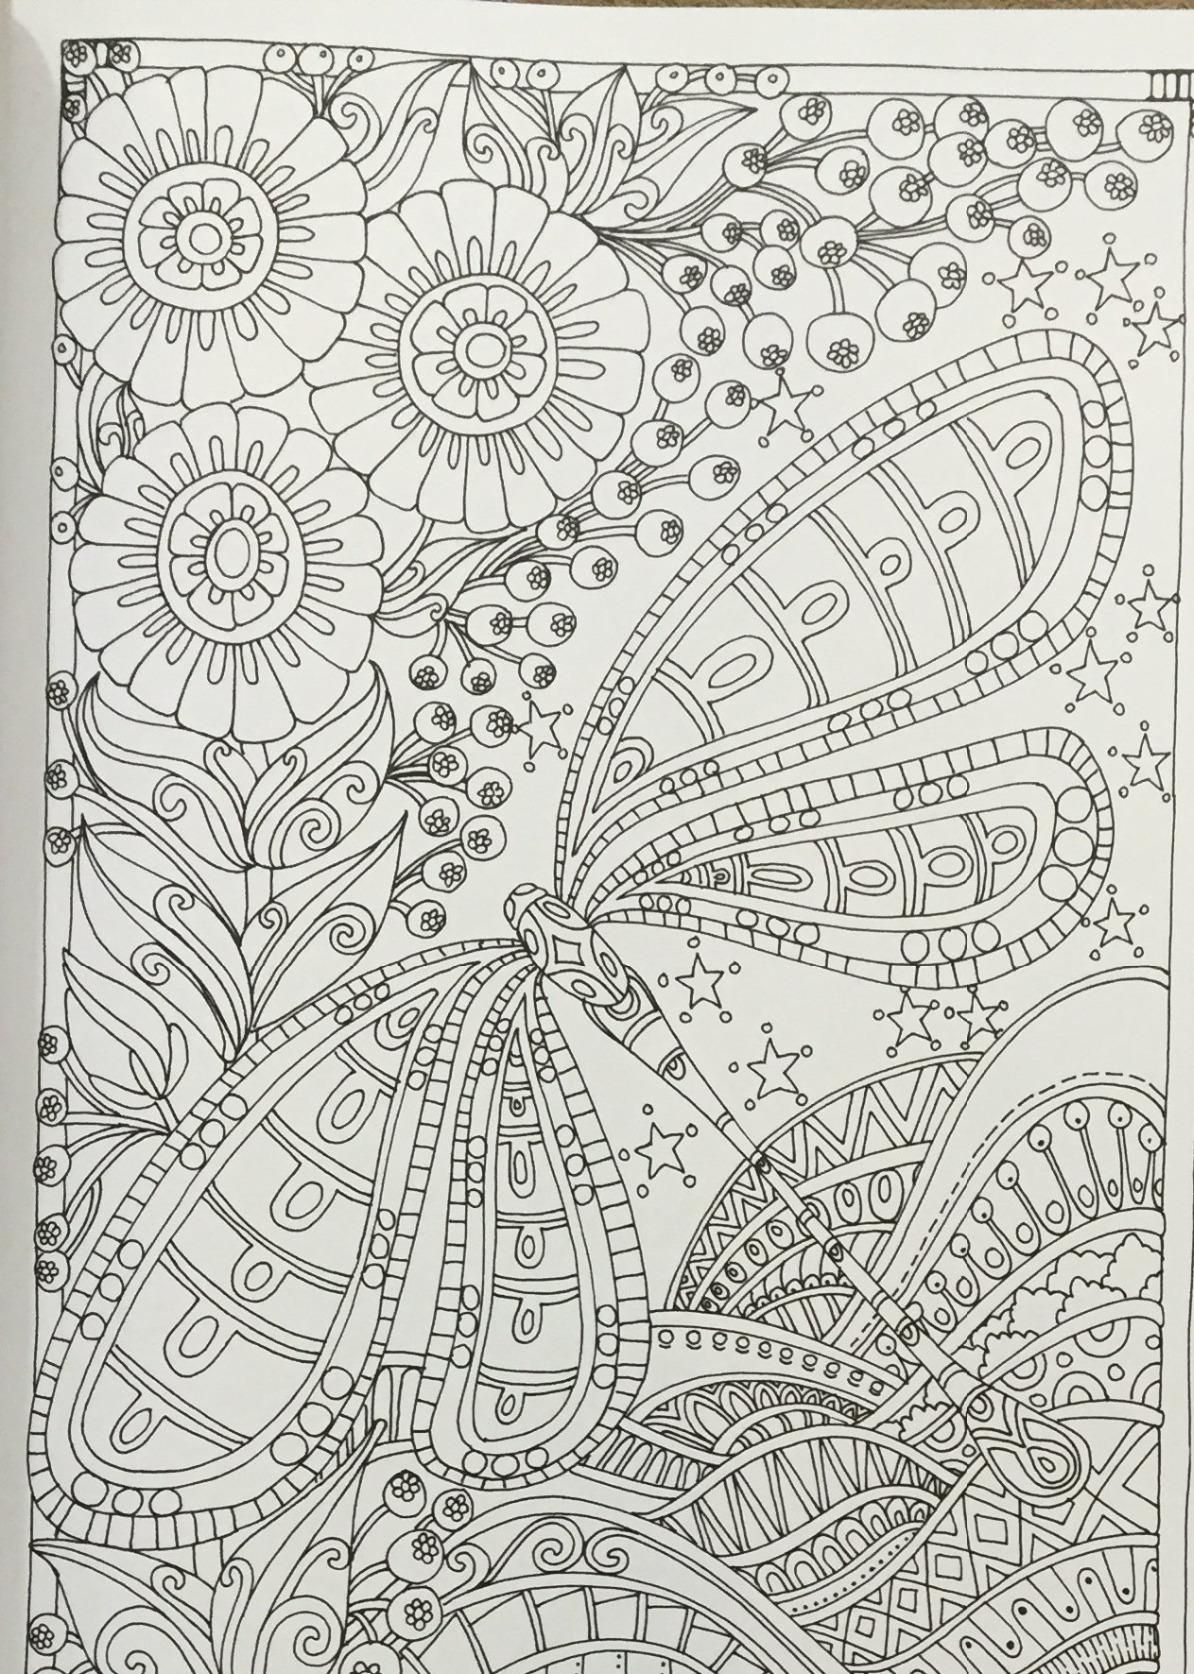 Coloring in dragonflies - Creative Haven Entangled Dragonflies Coloring Book Adult Coloring Dr Angela Porter